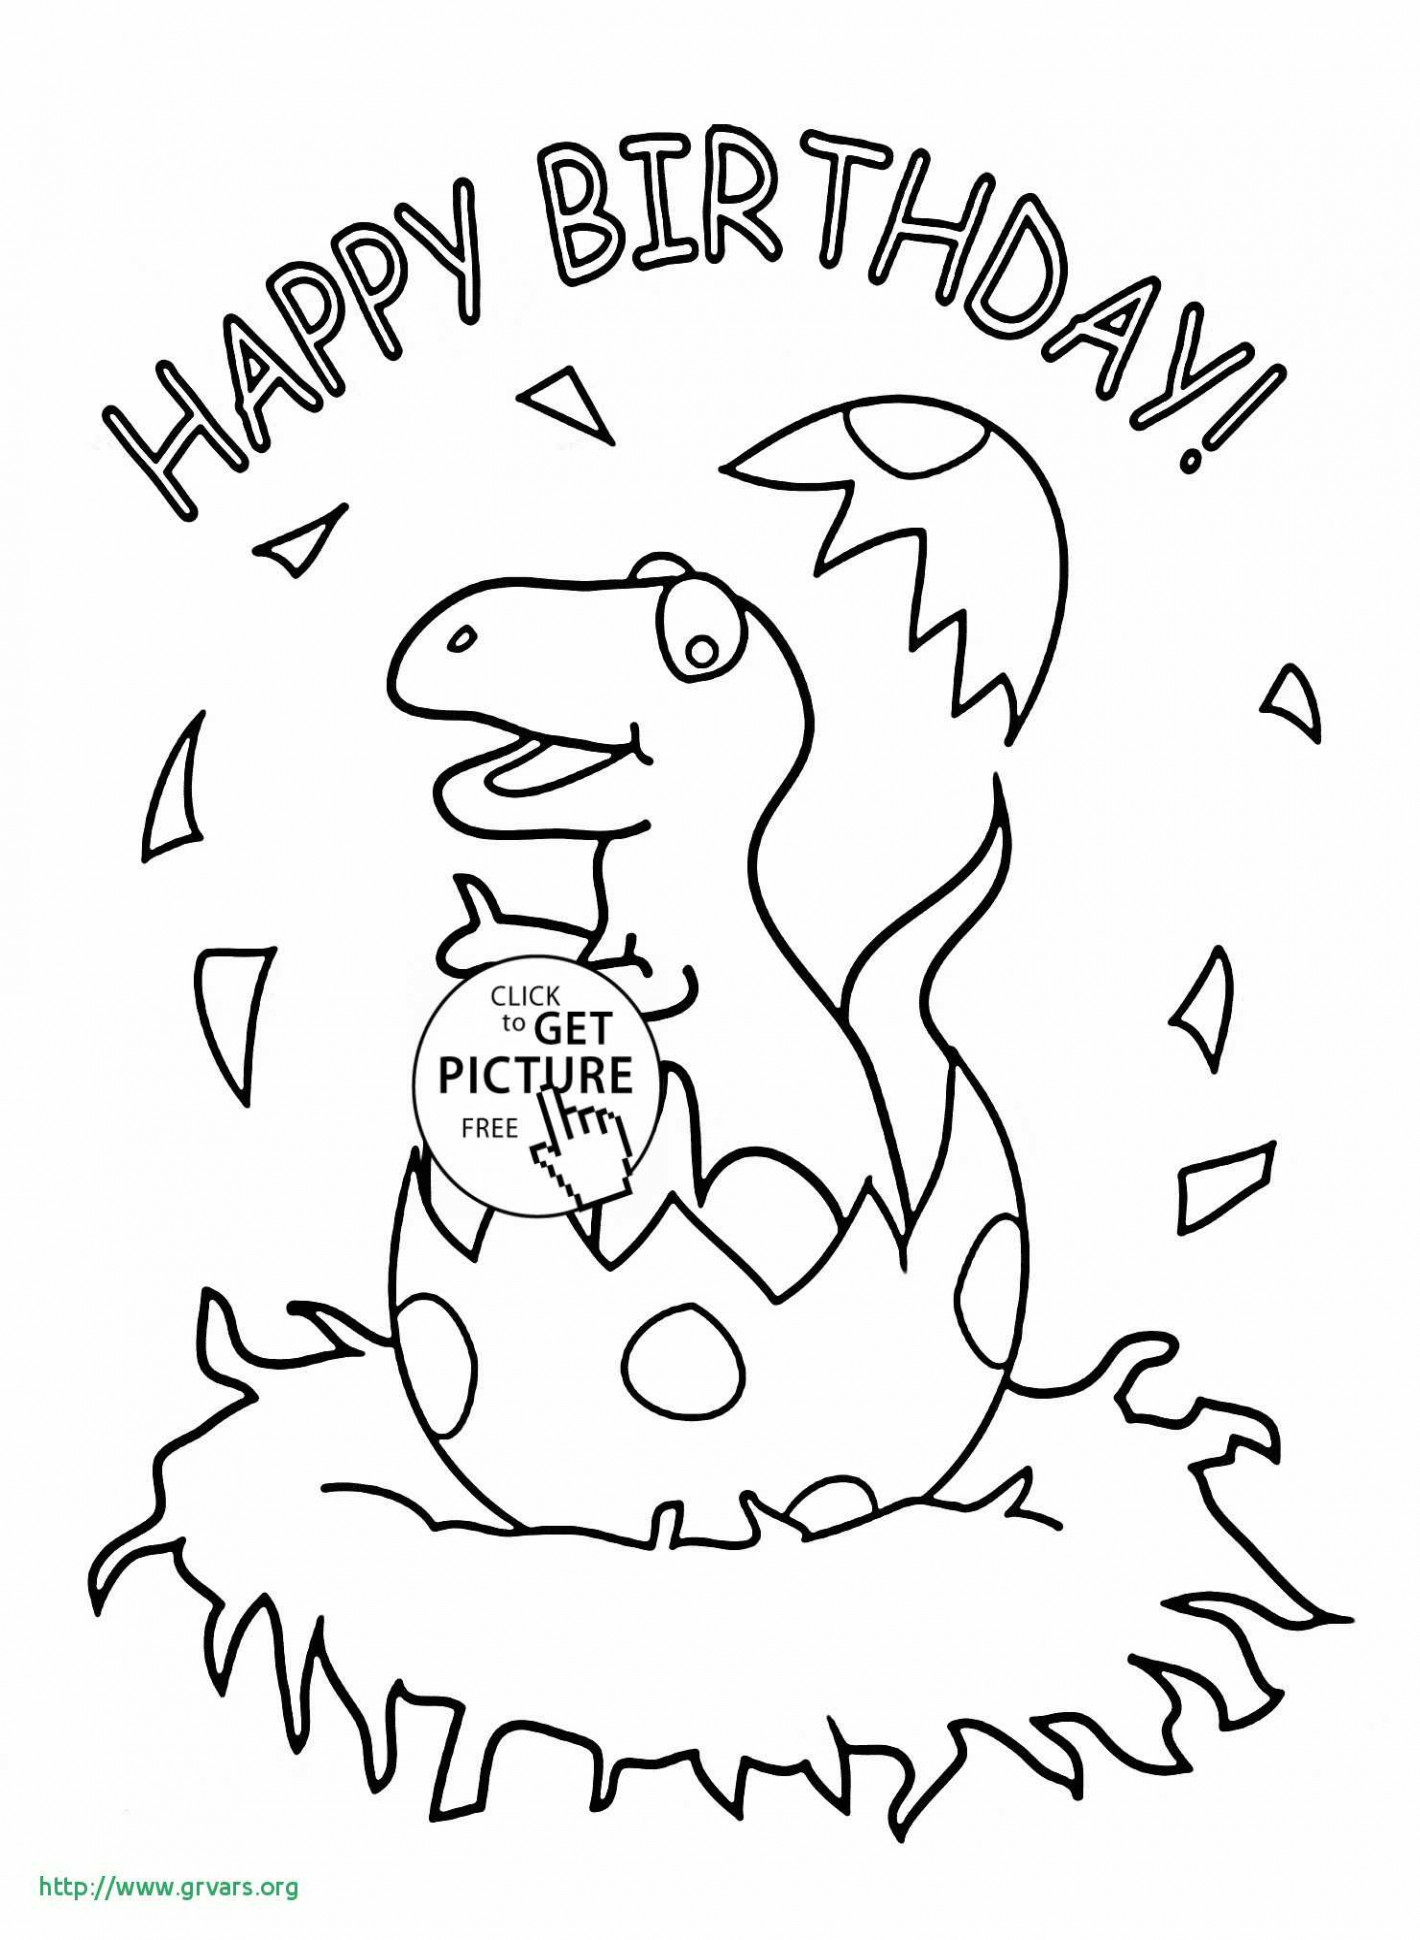 Coloring Pages For Birthday Happy Birthday Coloring Pages For Kids Coloring Pages Birthday Card